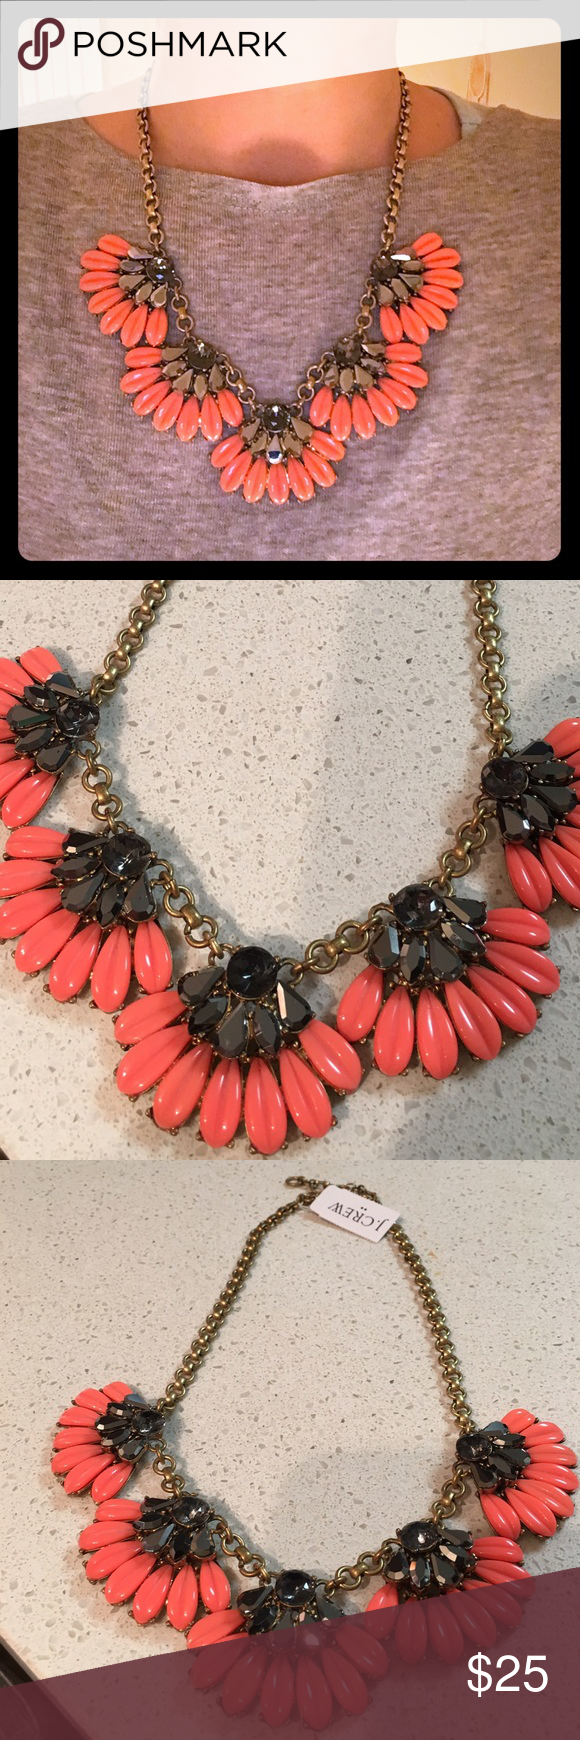 J. Crew Flower Statement Necklace Beautiful Necklace. Comes with original dust bag. Very gently used (maybe once or twice). J. Crew Jewelry Necklaces